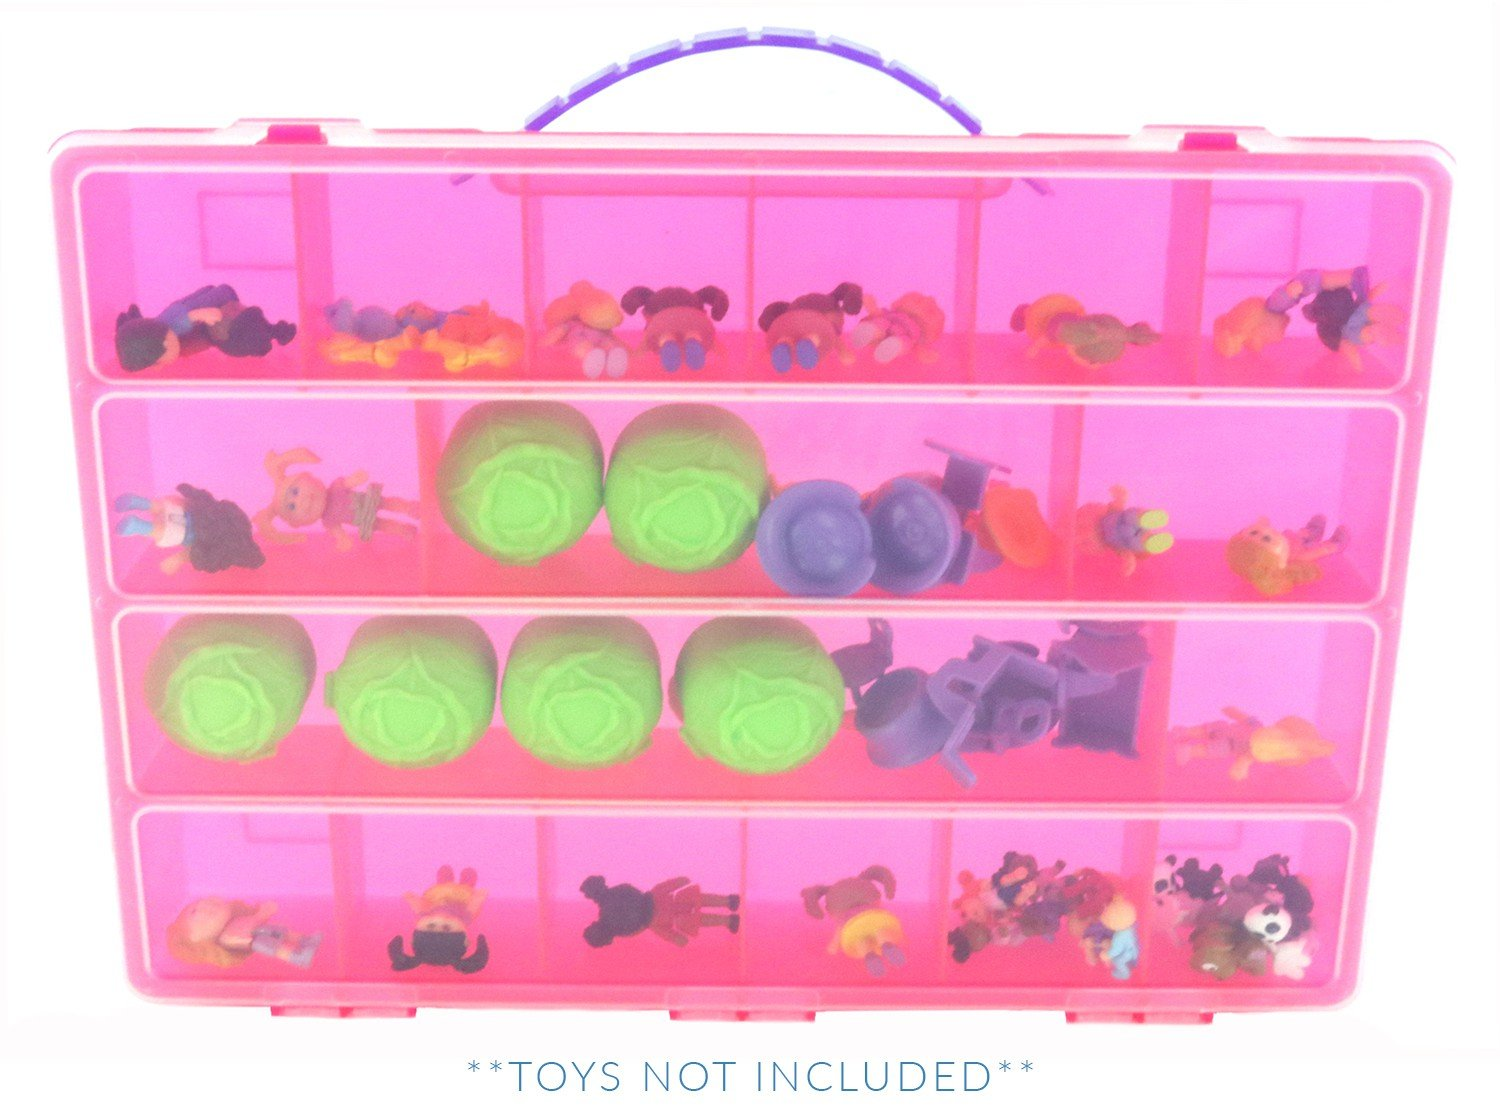 Organizer for Figurine Toys and Accessories Pink Life Made Better Cabbage Patch Case Carrying Storage Box